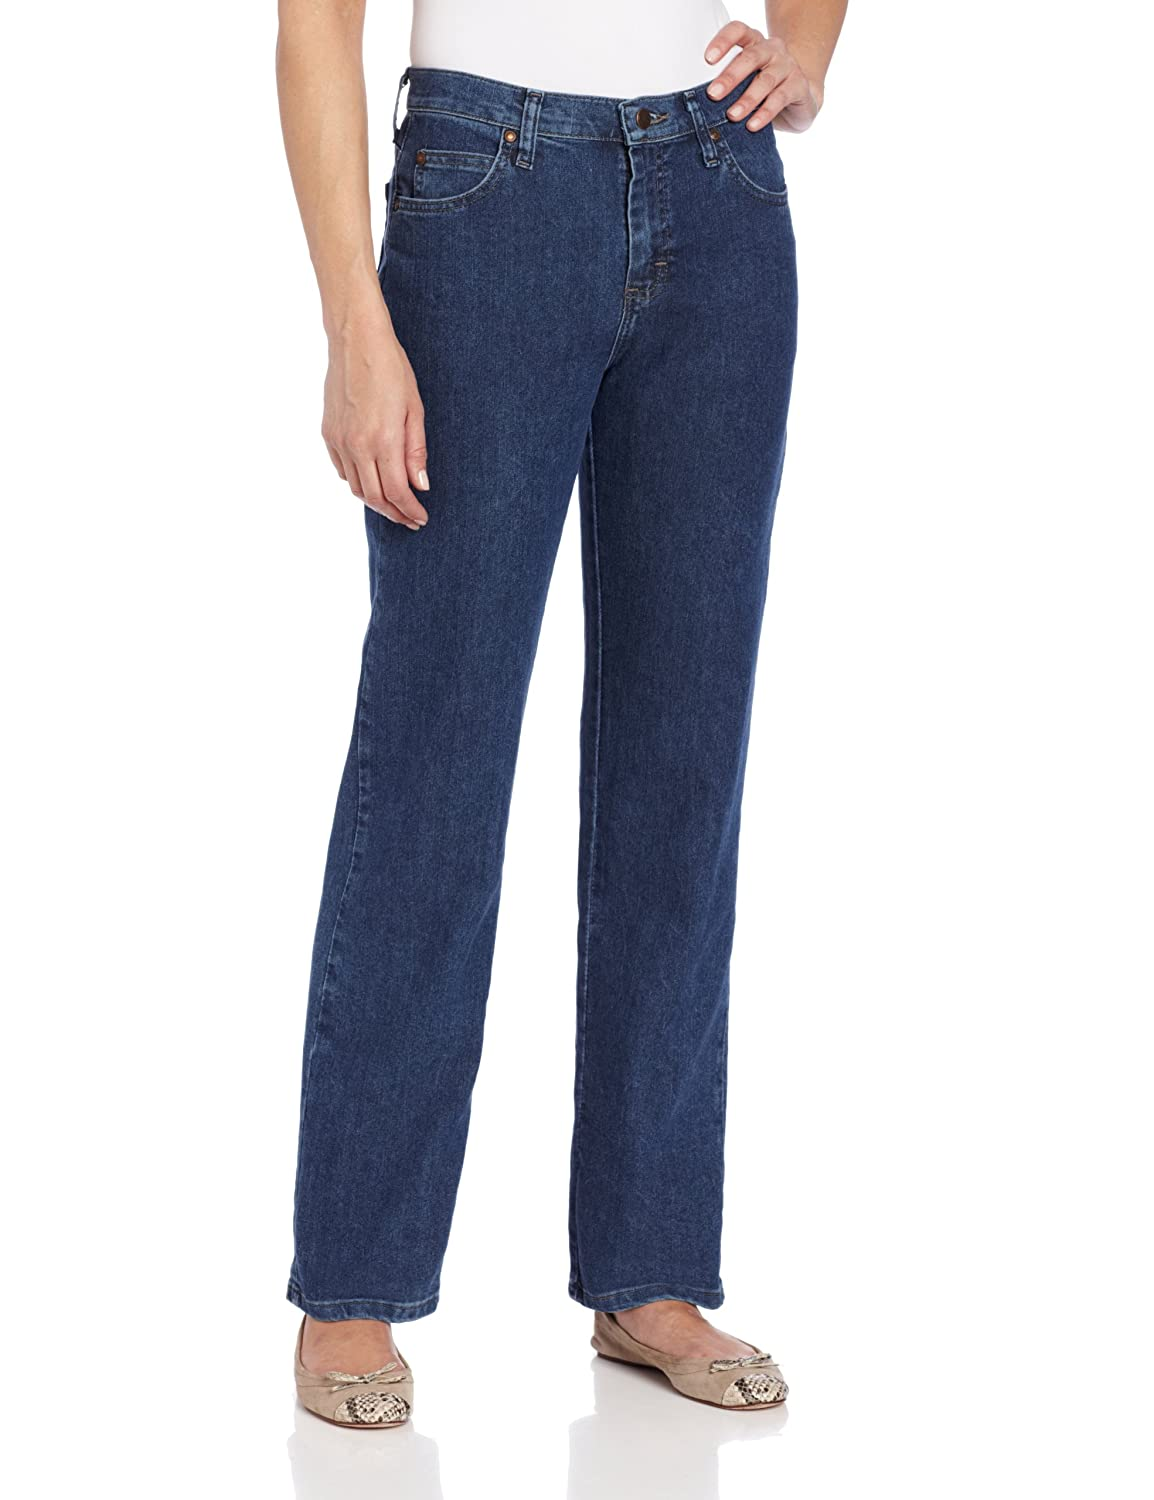 LEE Womens Petite Relaxed Fit Straight Leg Jean